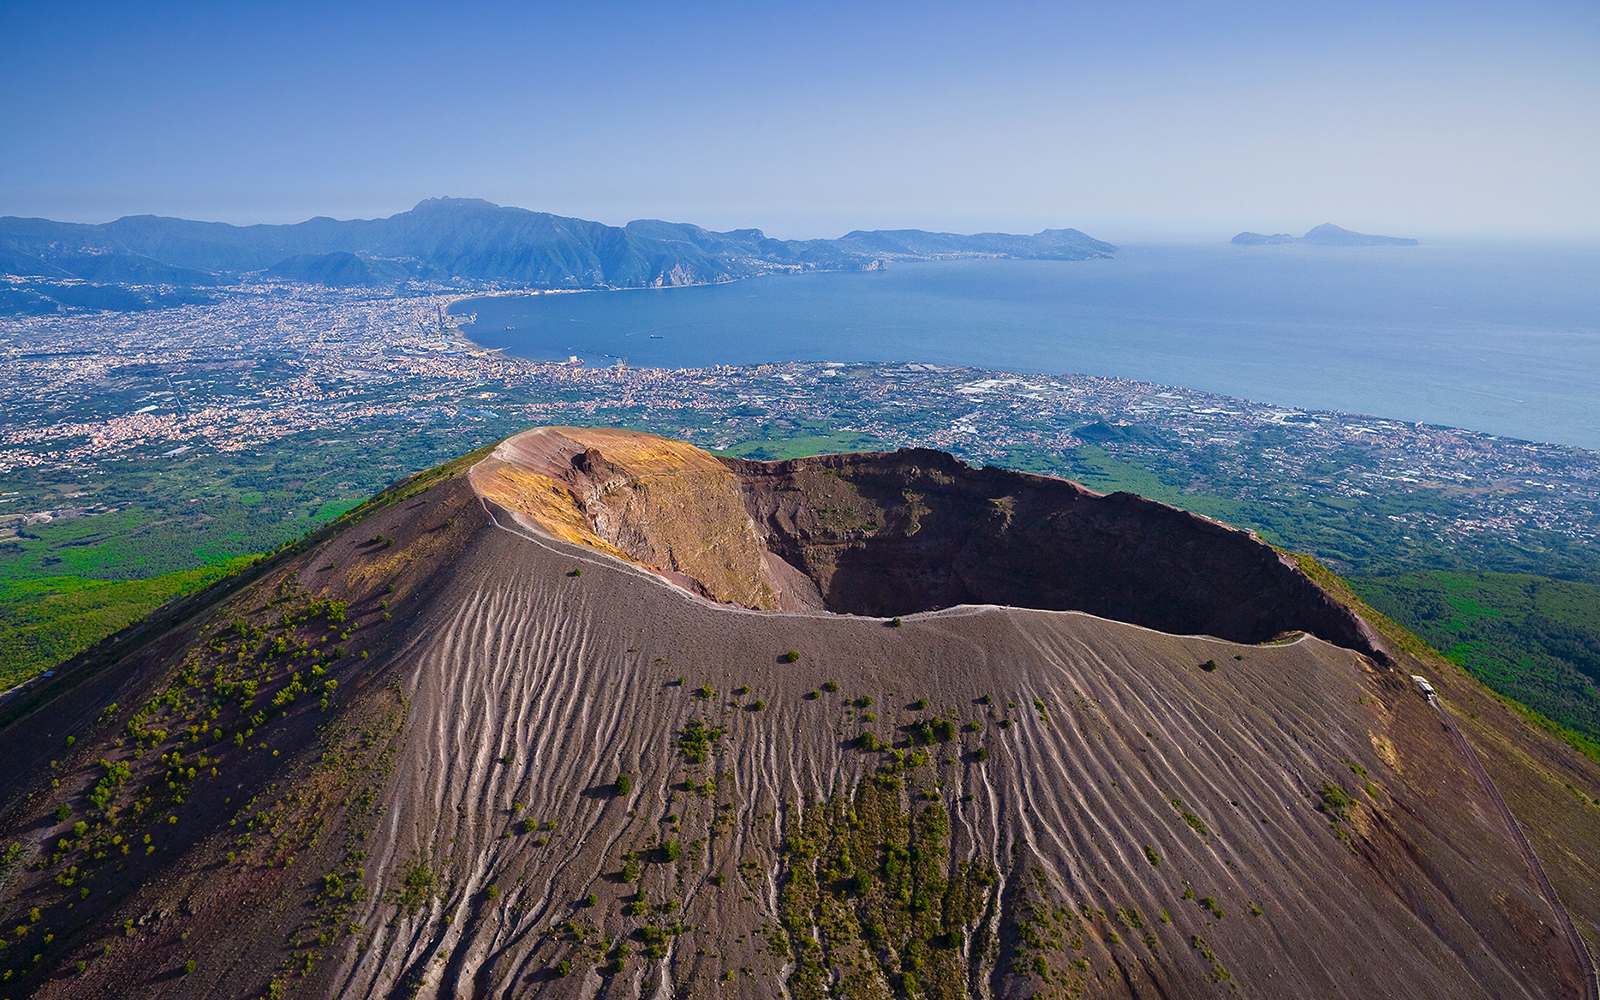 275e7f37 66e1 4196 bedc f6ffa4e896a2 8940 naples pompeii and mount vesuvio full day tour from naples 02